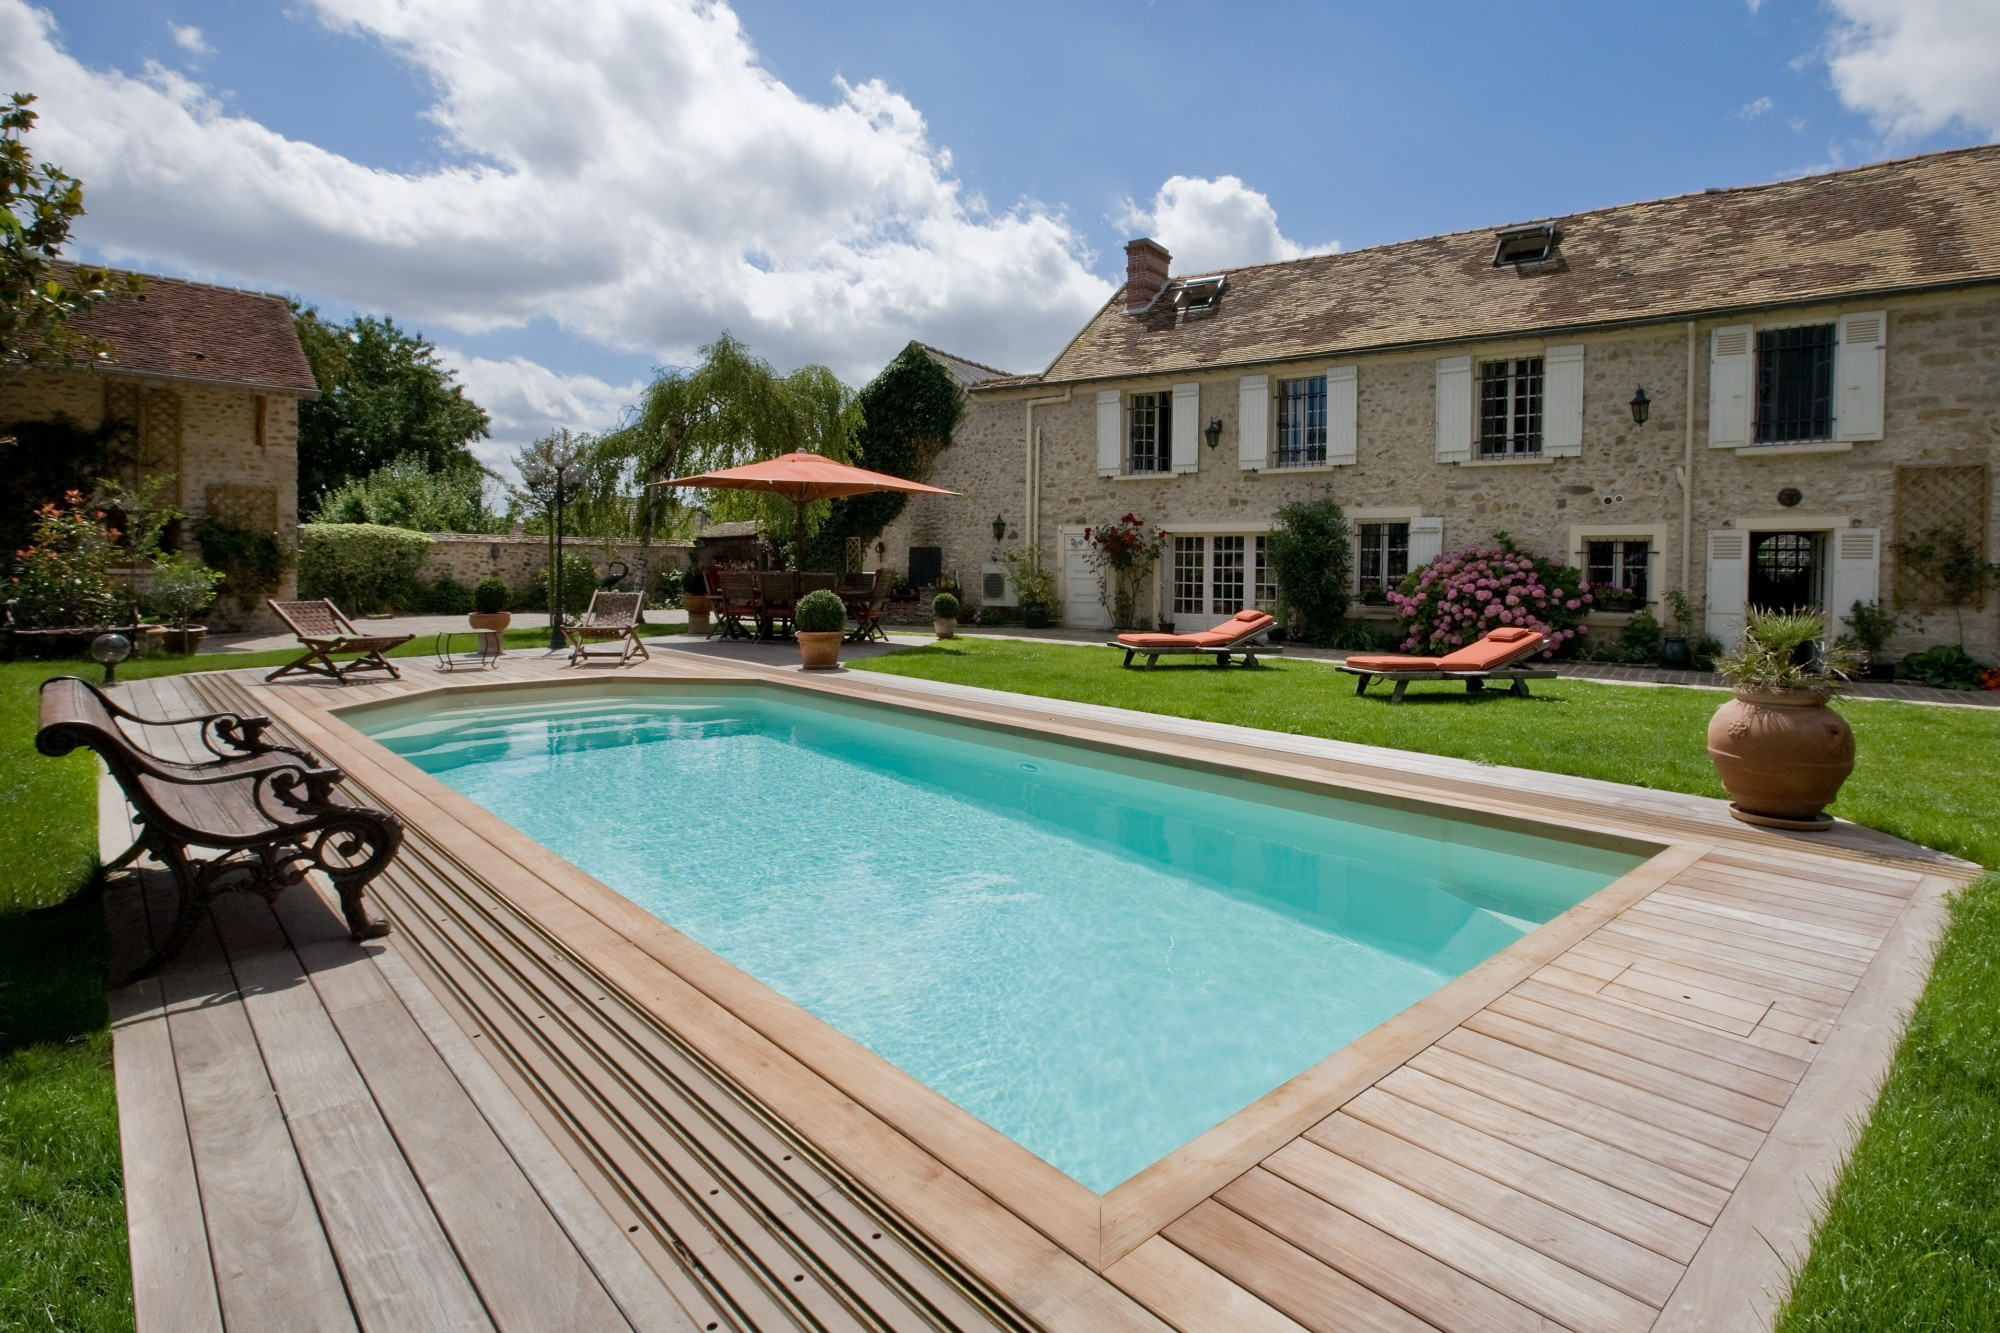 Piscine guide choix de solution co t et devis en ligne for Piscine construction prix